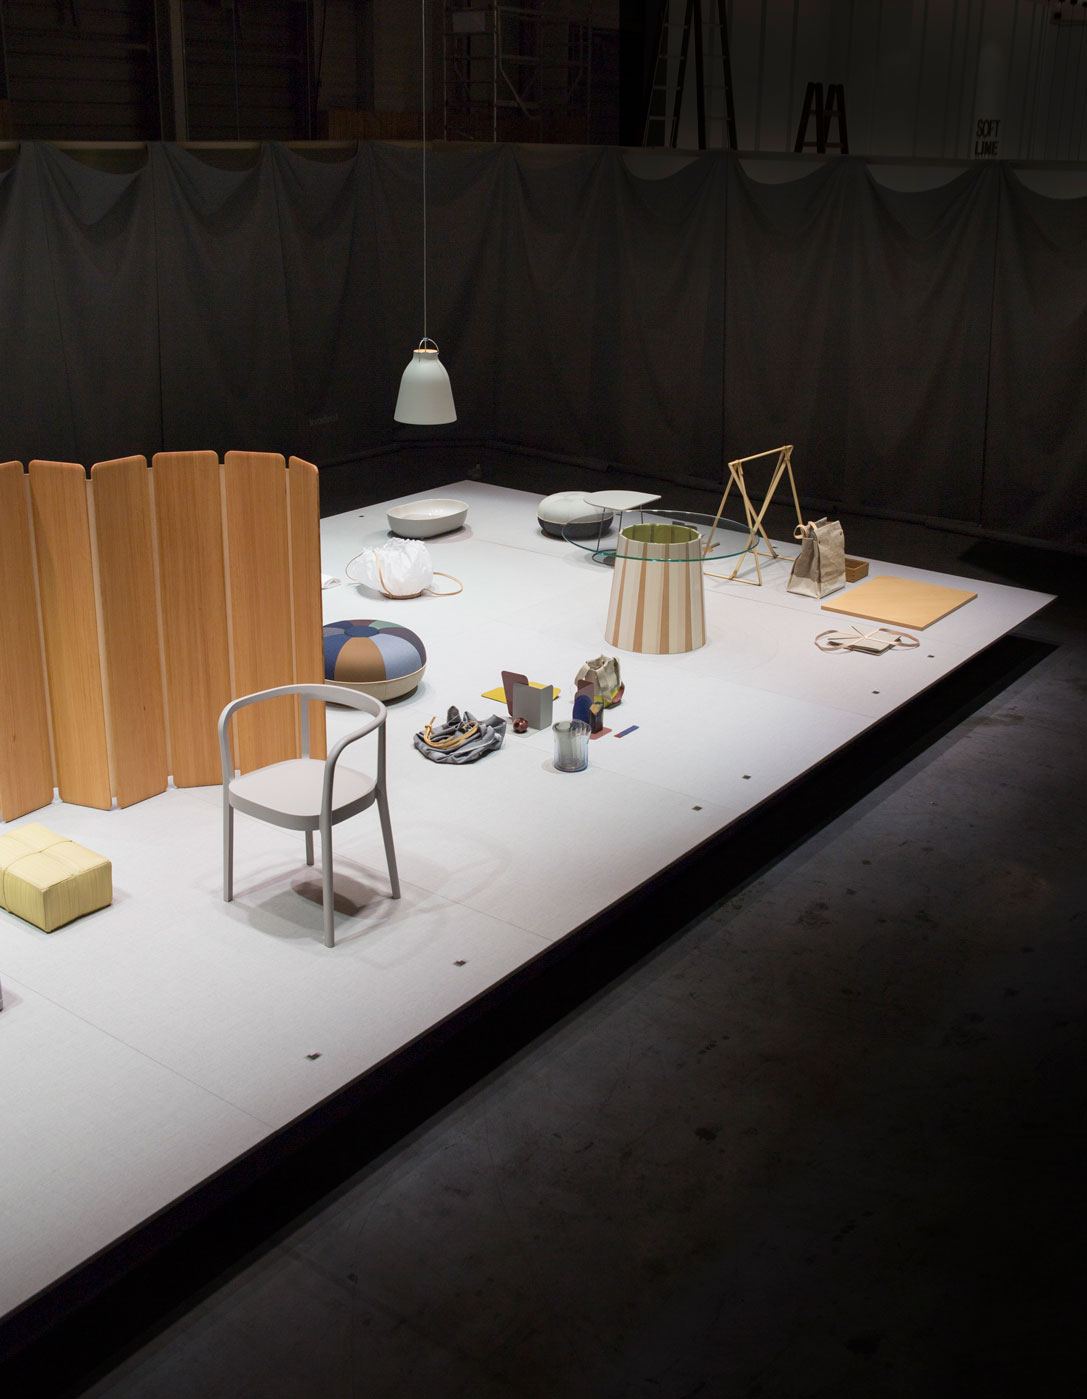 The exhibition 'CECILIE MANZ - OBJECTS' showcasing works of Cecilie Manz at Maison & Objet 2018.